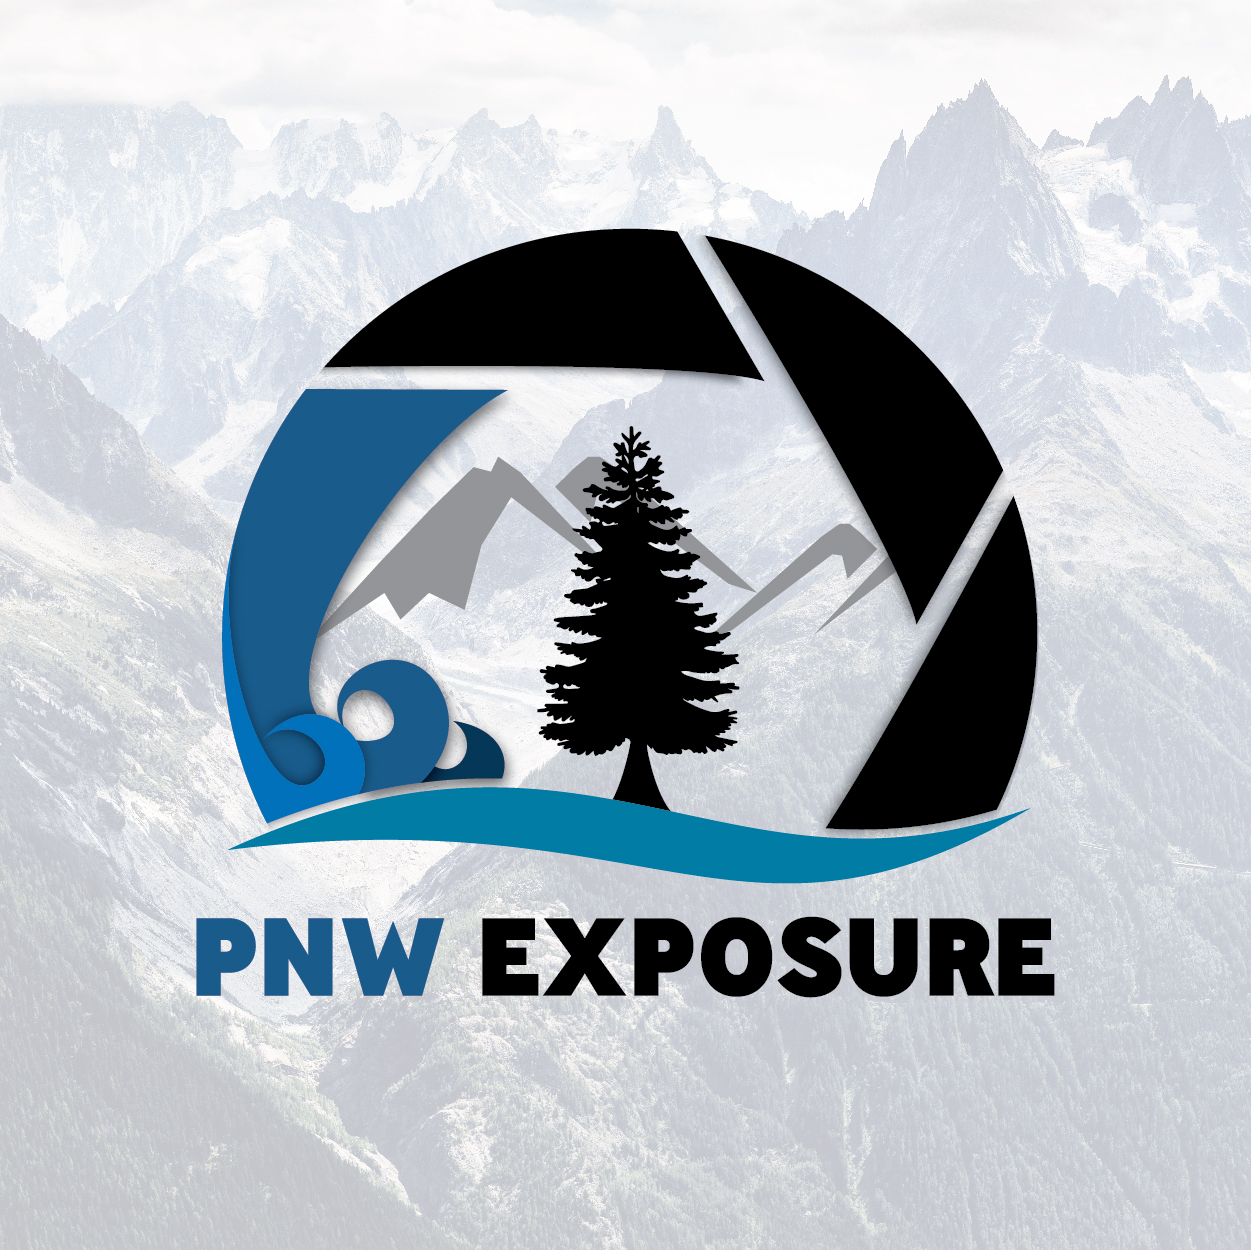 PNW exposure  |  branding + graphic design